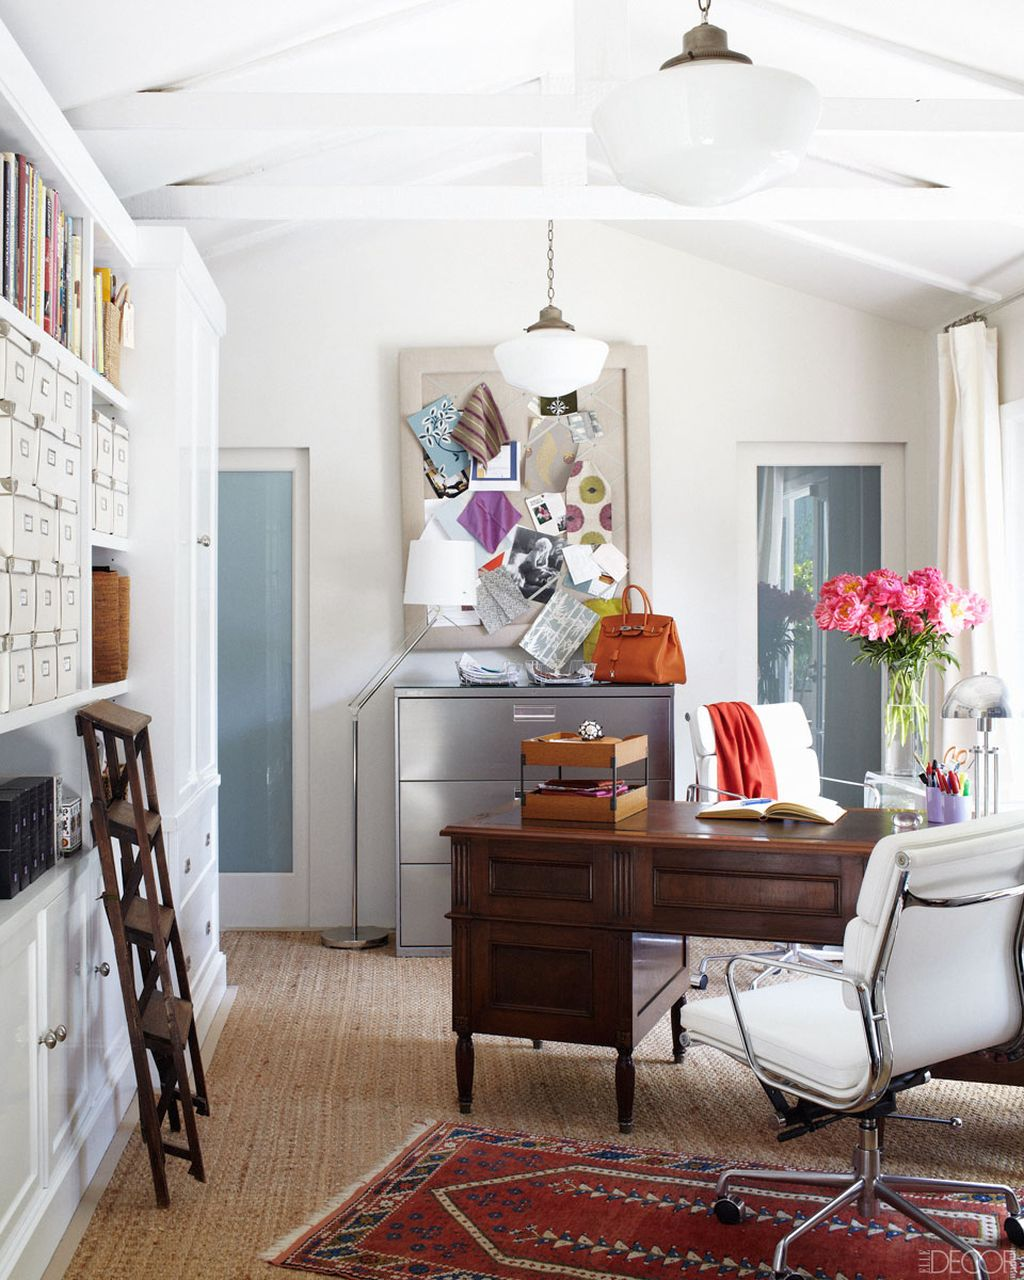 Home Office Decorating Ideas: 20 Inspiring Home Office Design Ideas For Small Spaces